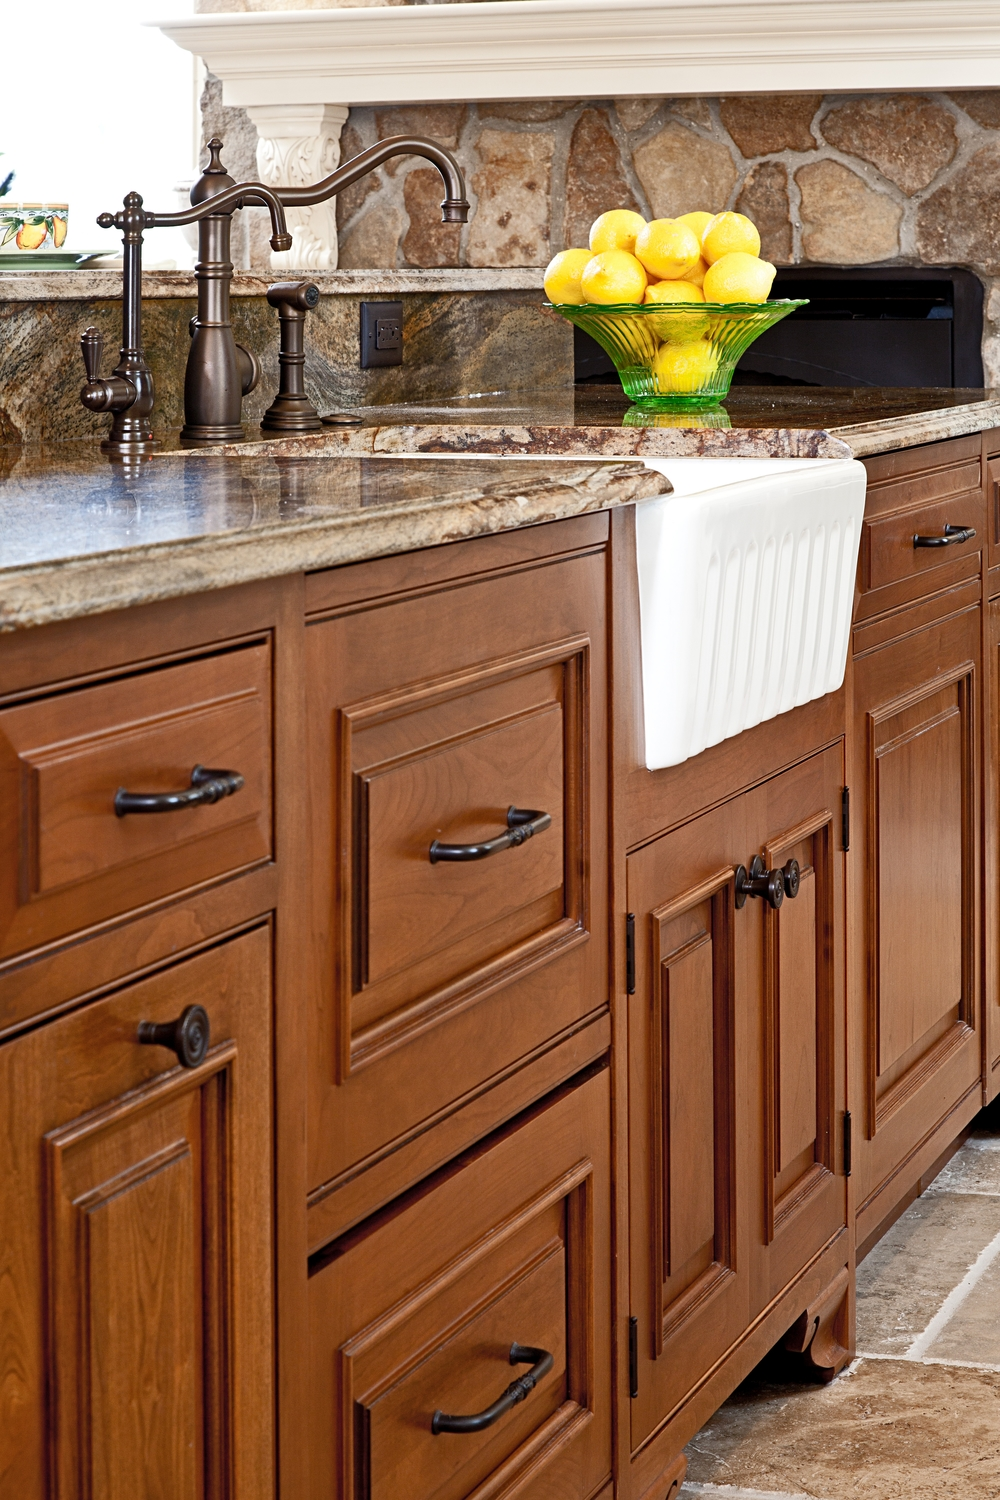 MaryCourvilleDesigns_Kitchen_2.JPG